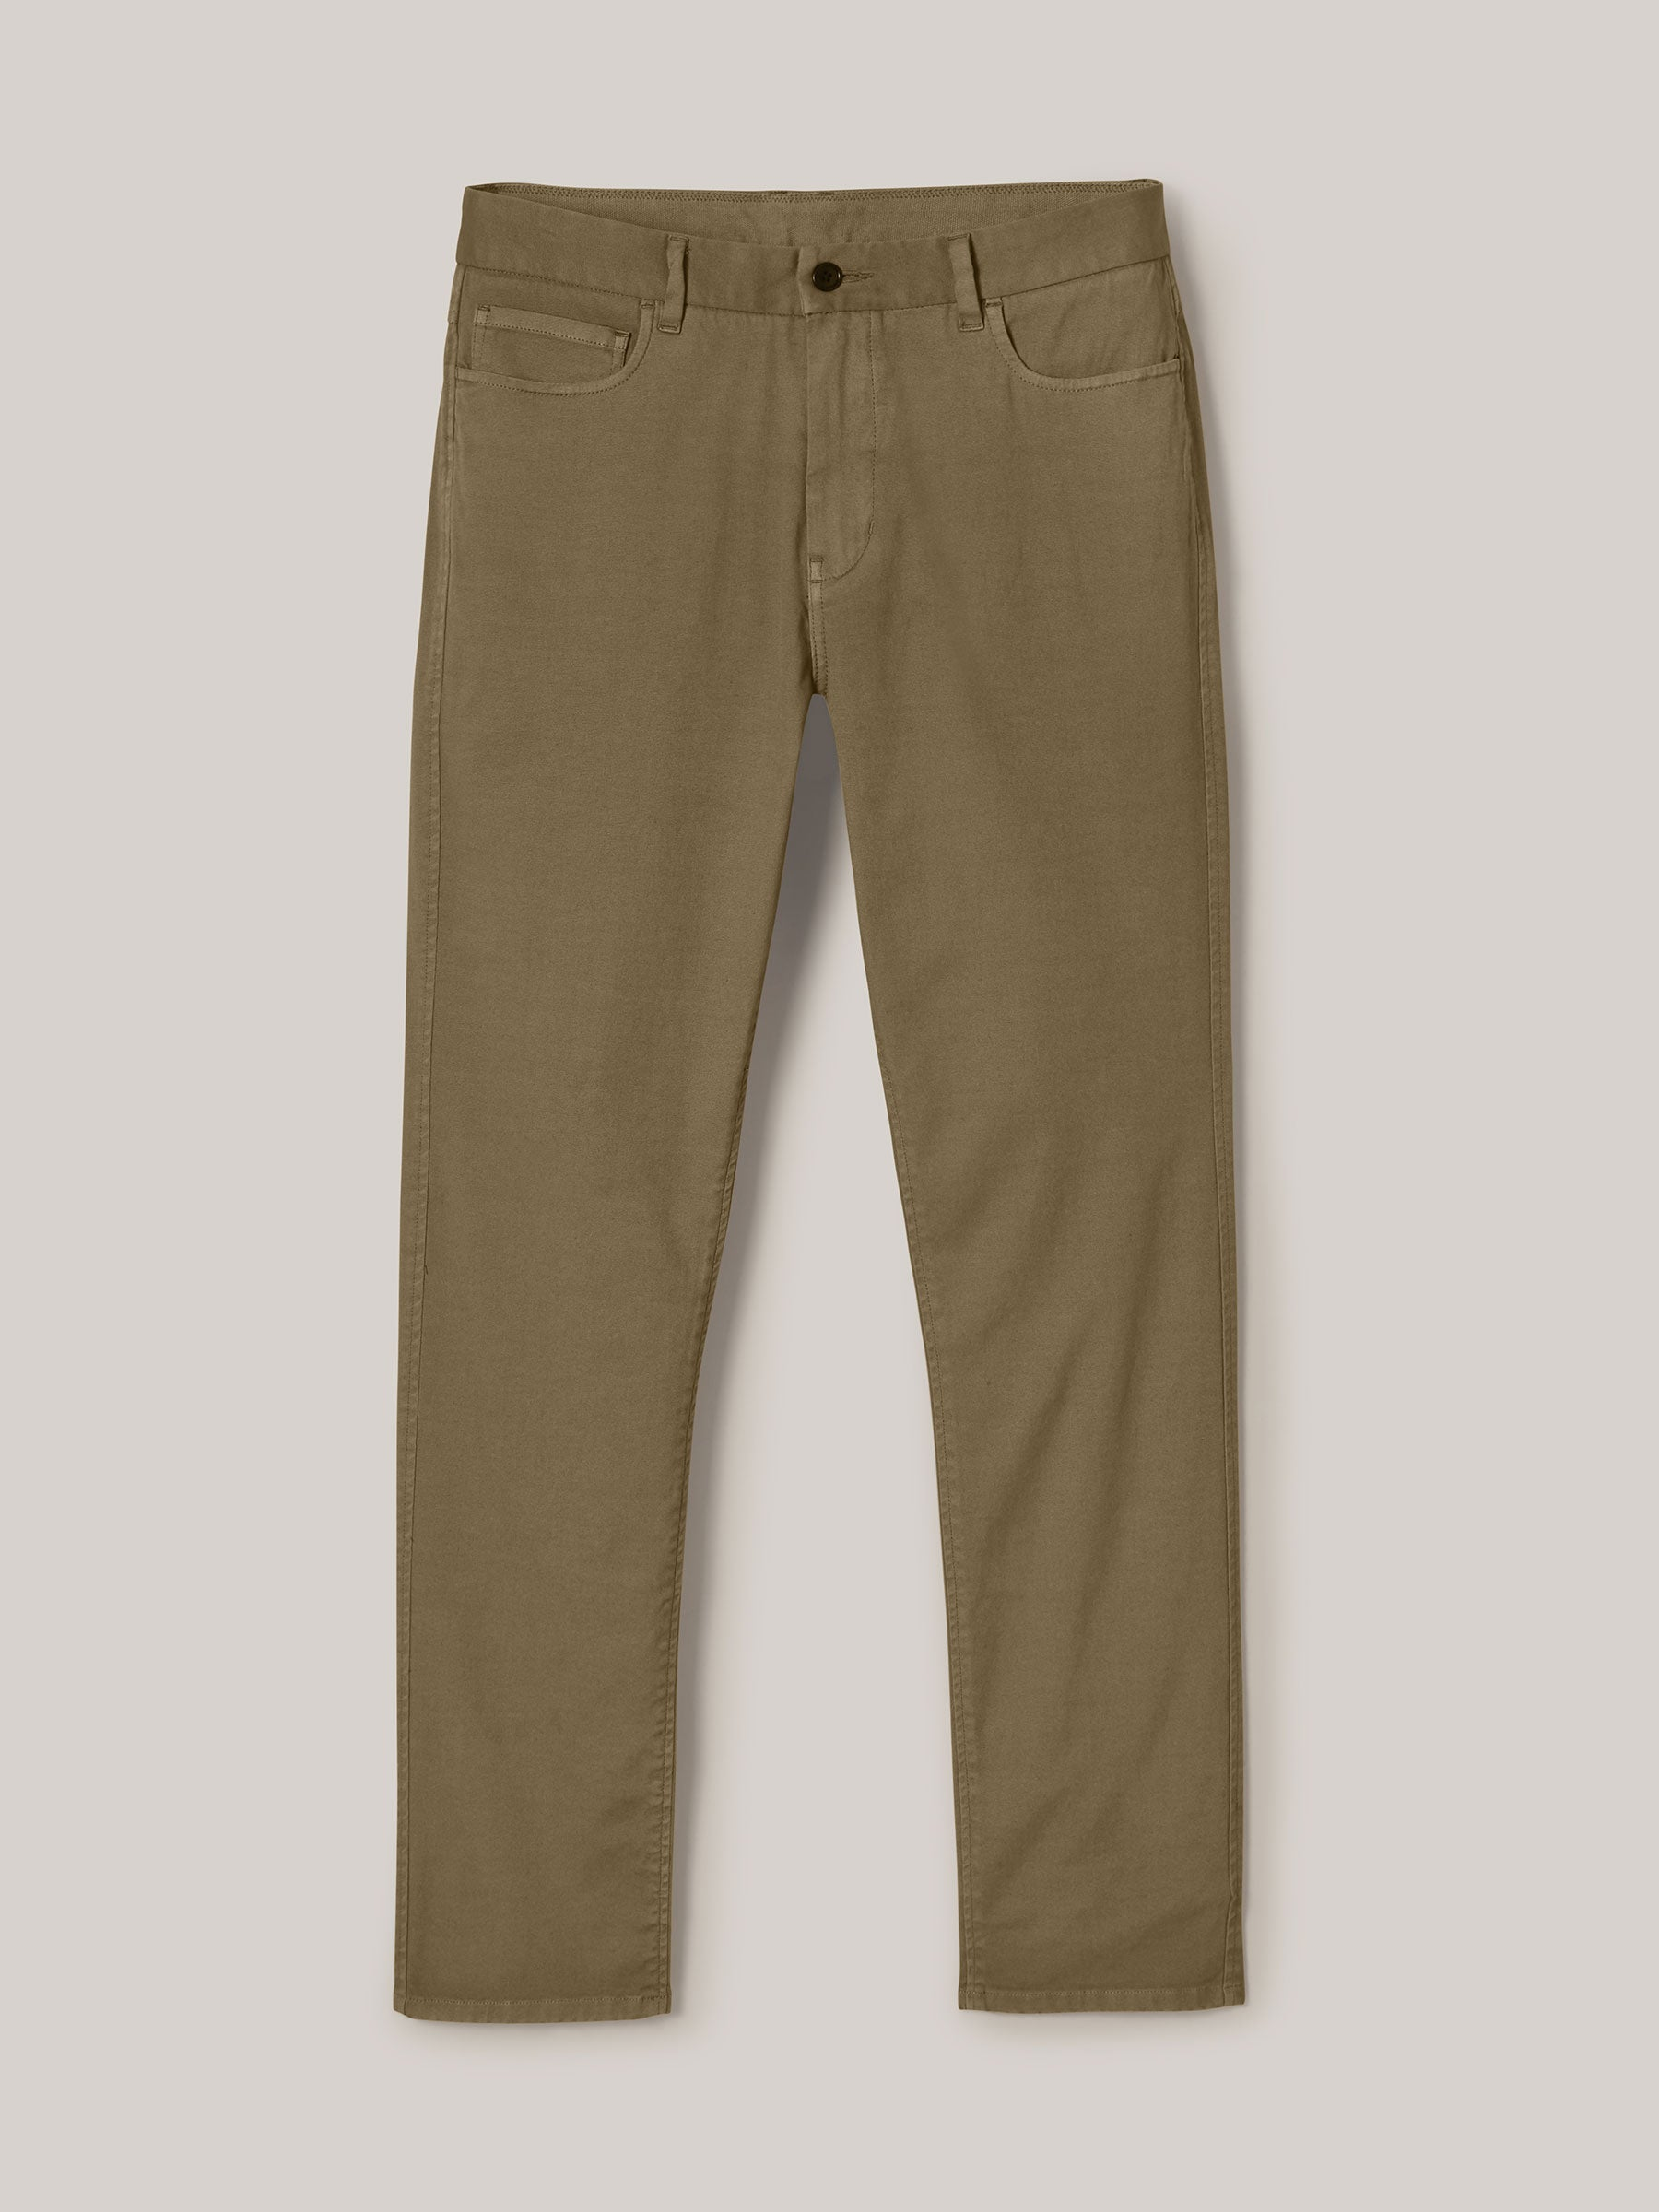 Buck Mason Vintage Canvas Pants